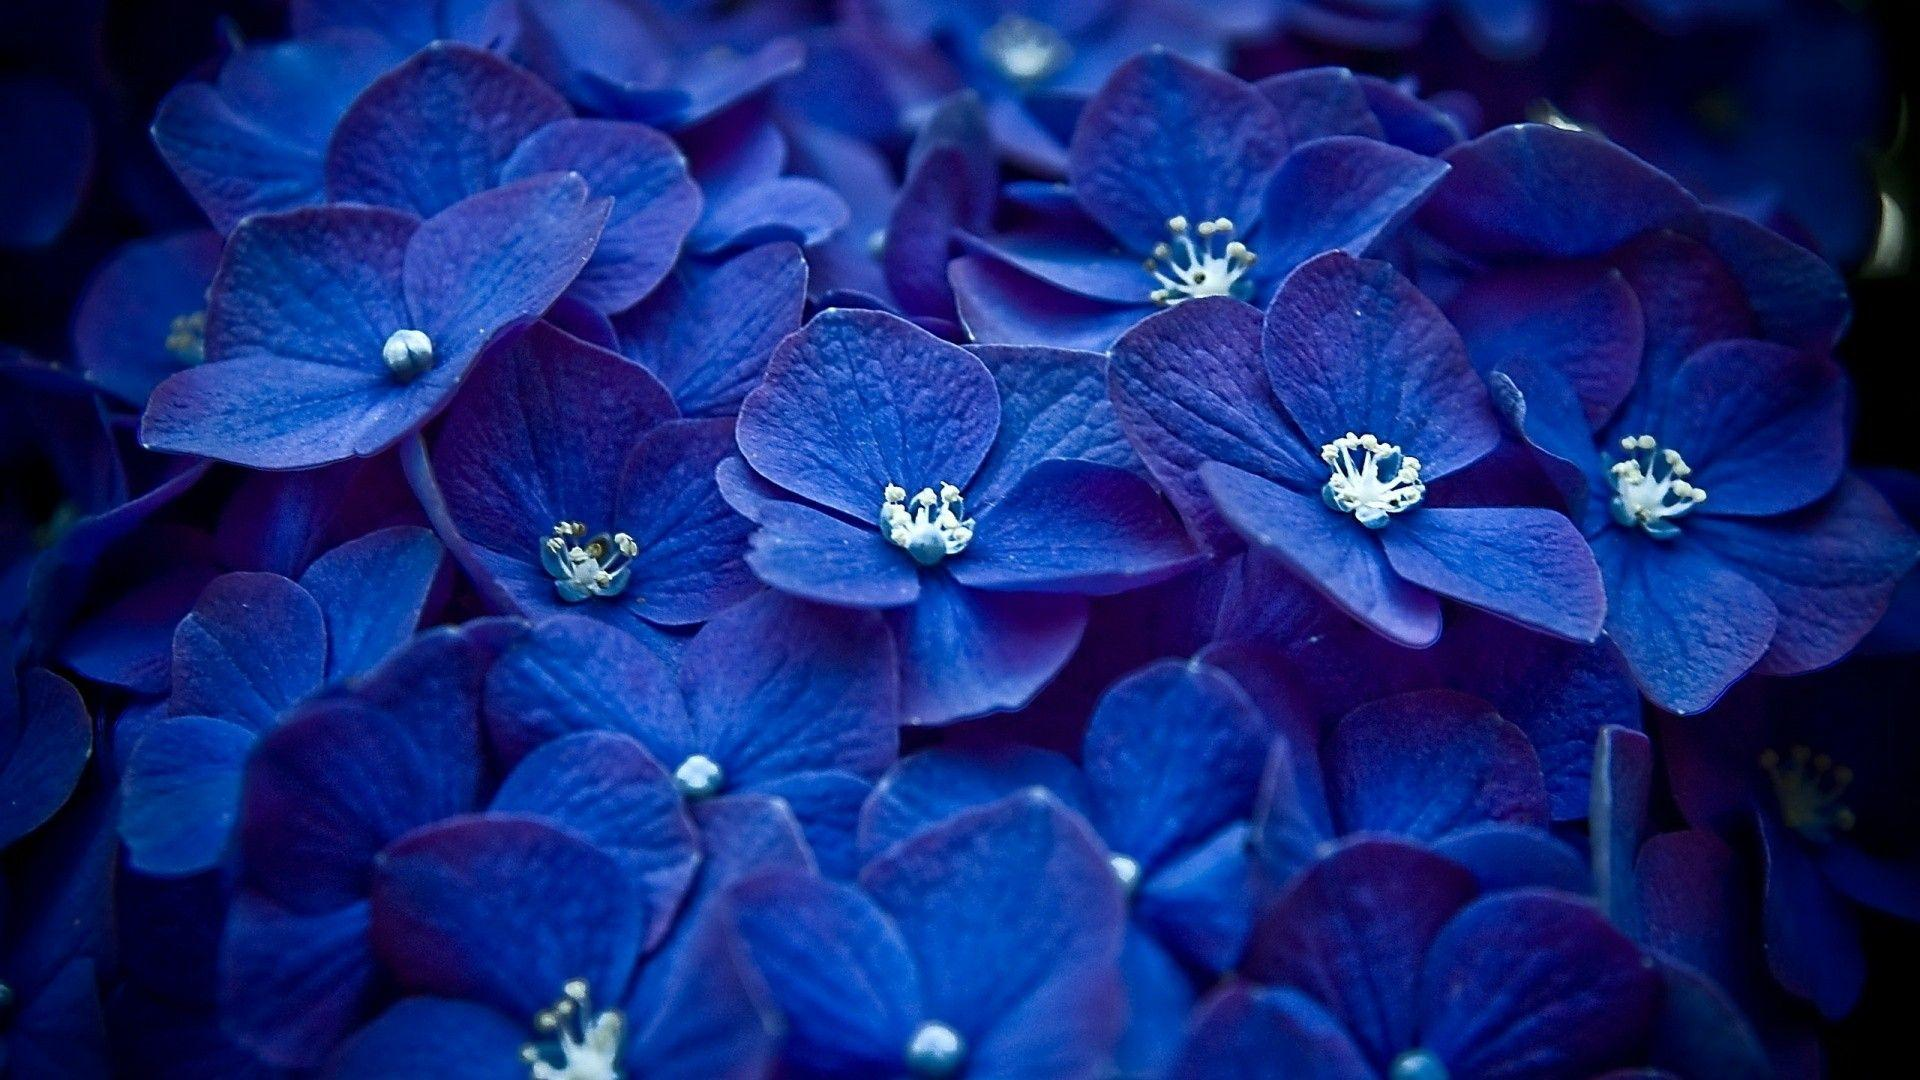 Hd Wallpapers For Pc Full Screen Flower Wallpaper Cave